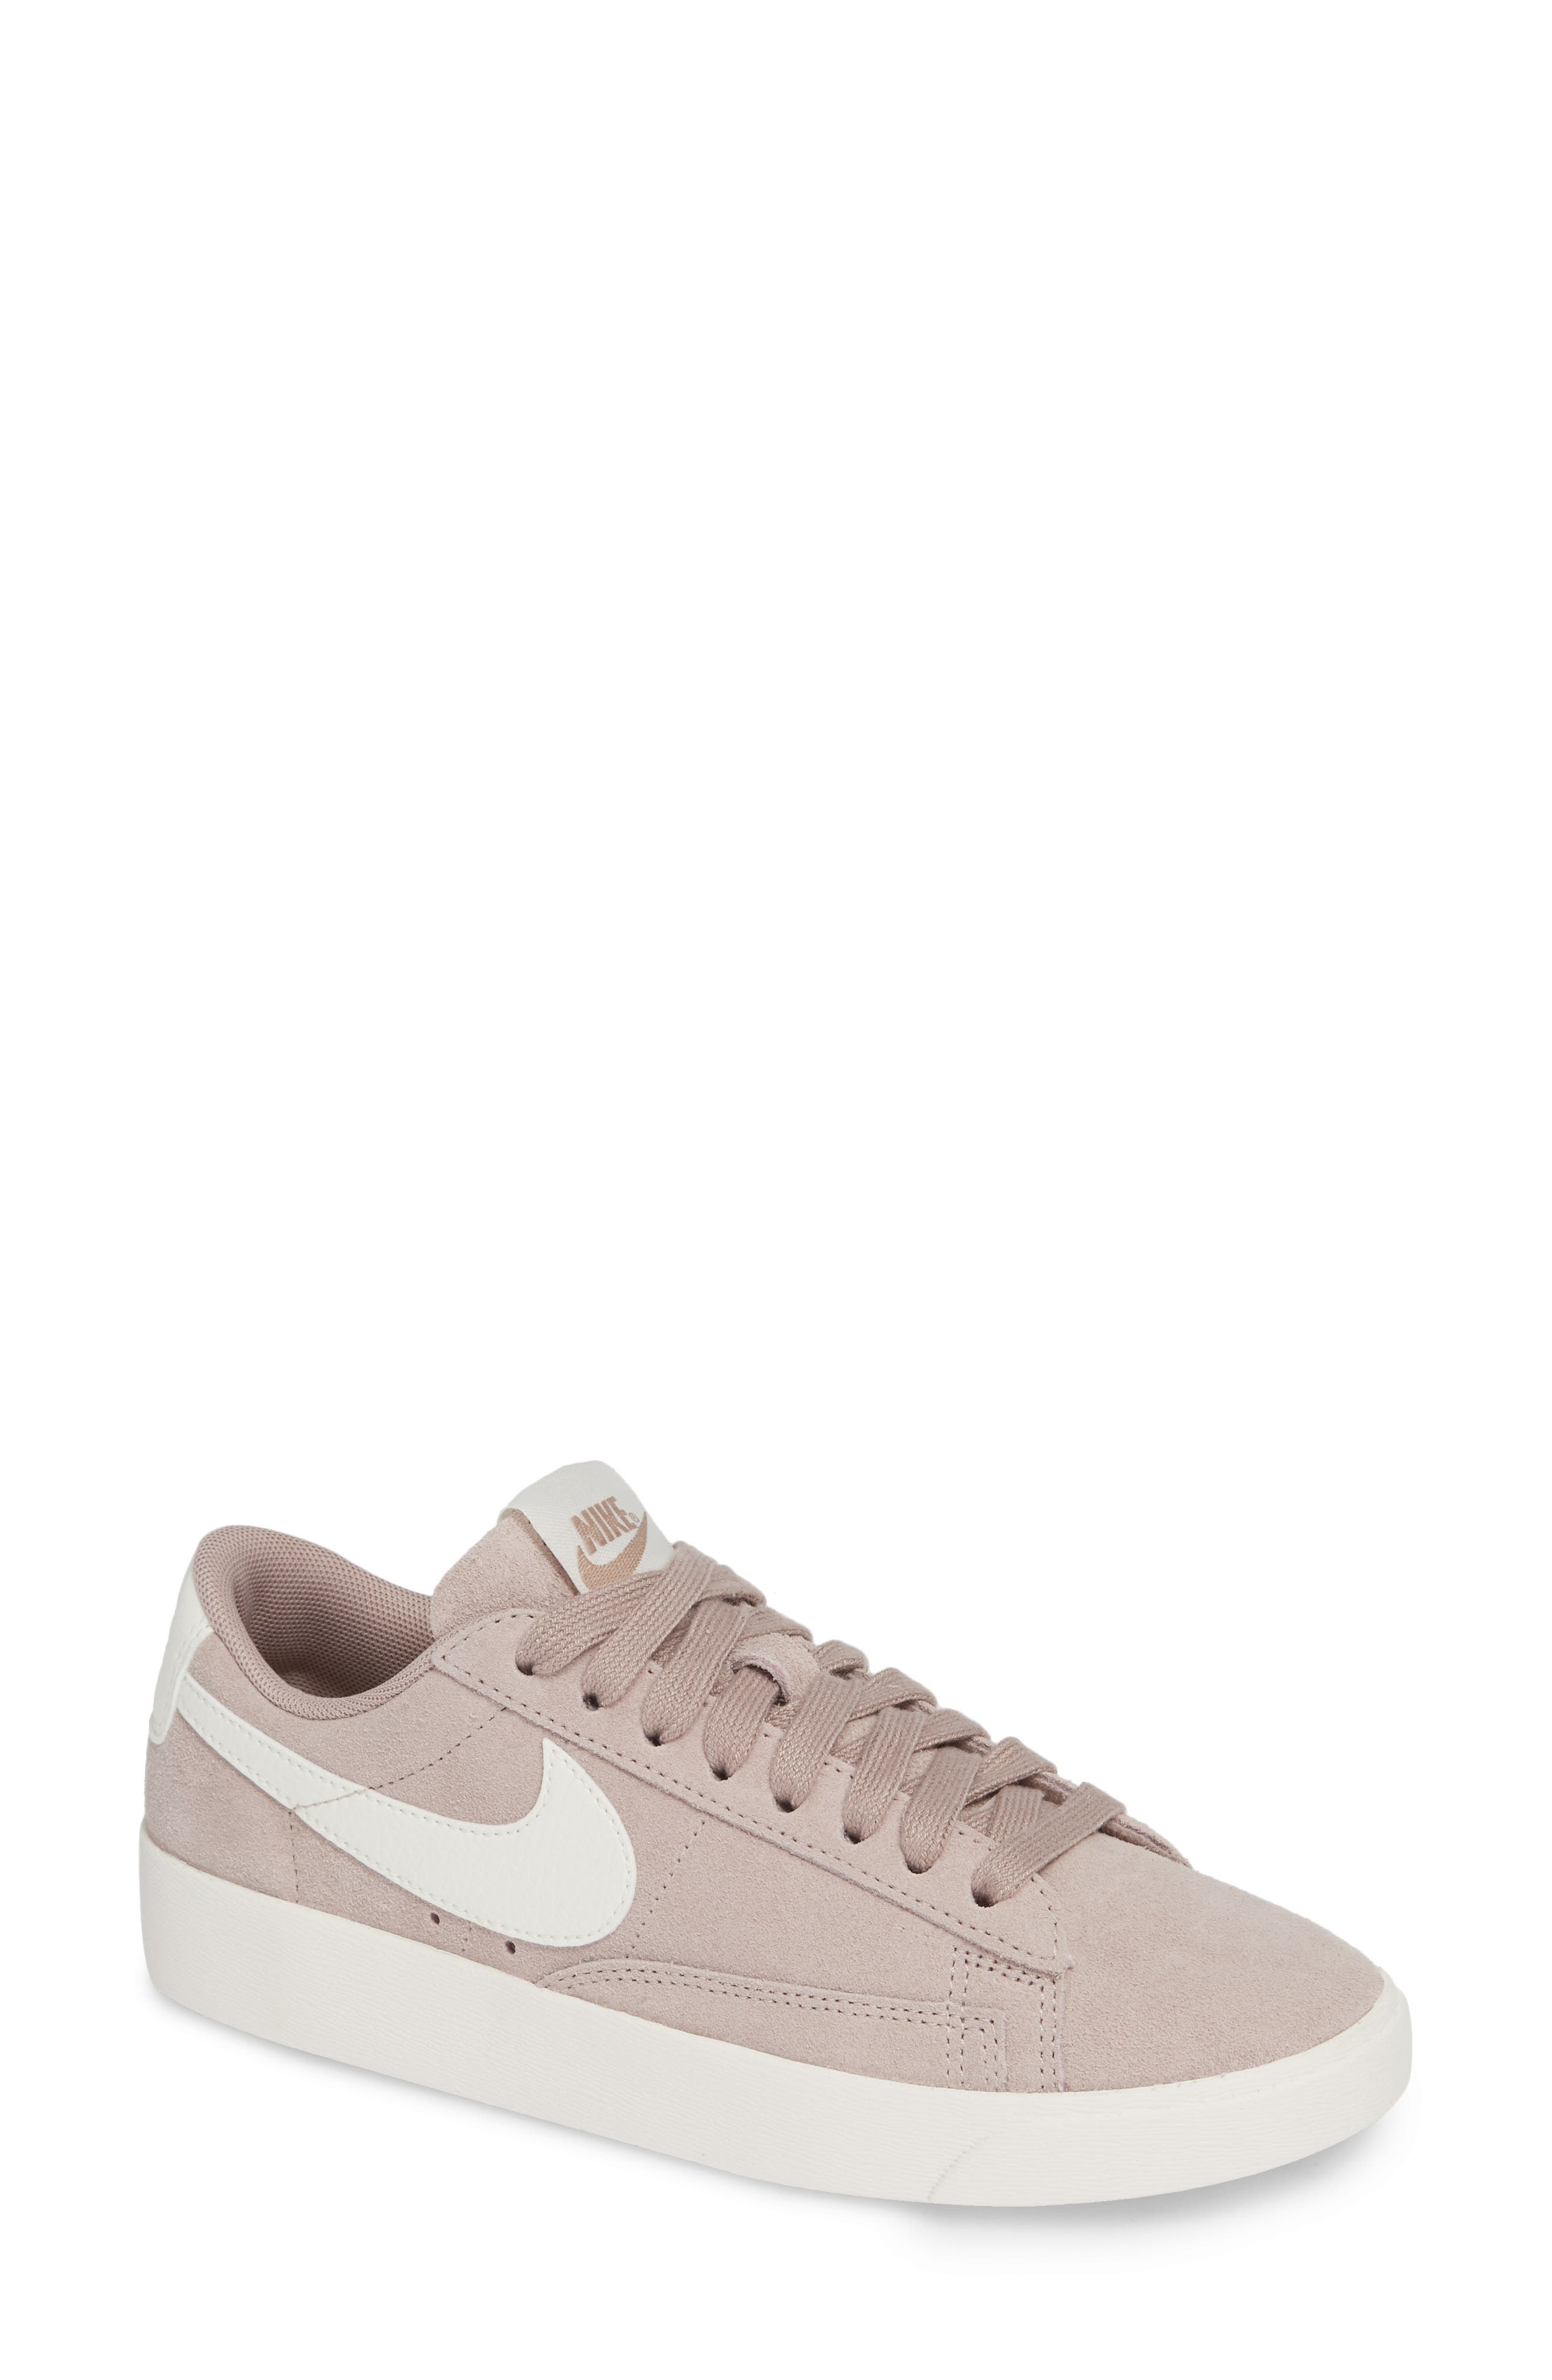 Blazer Low Sneaker,                             Main thumbnail 1, color,                             Diffused Taupe/ Sail